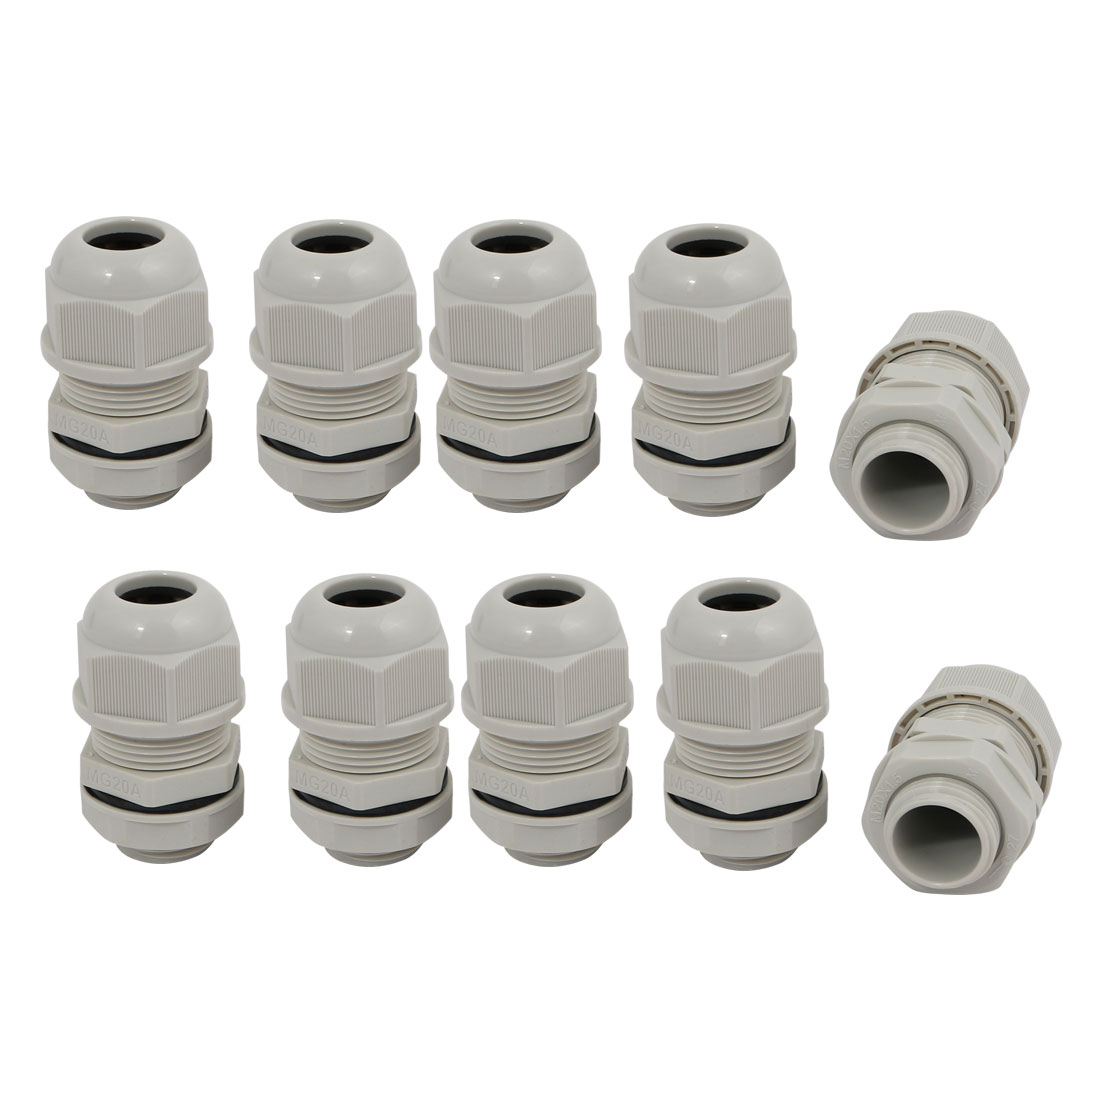 10pcs M20 x 1.5mm Nylon 4 Holes Cable Gland Connector Joint Gray MA20-H4-02